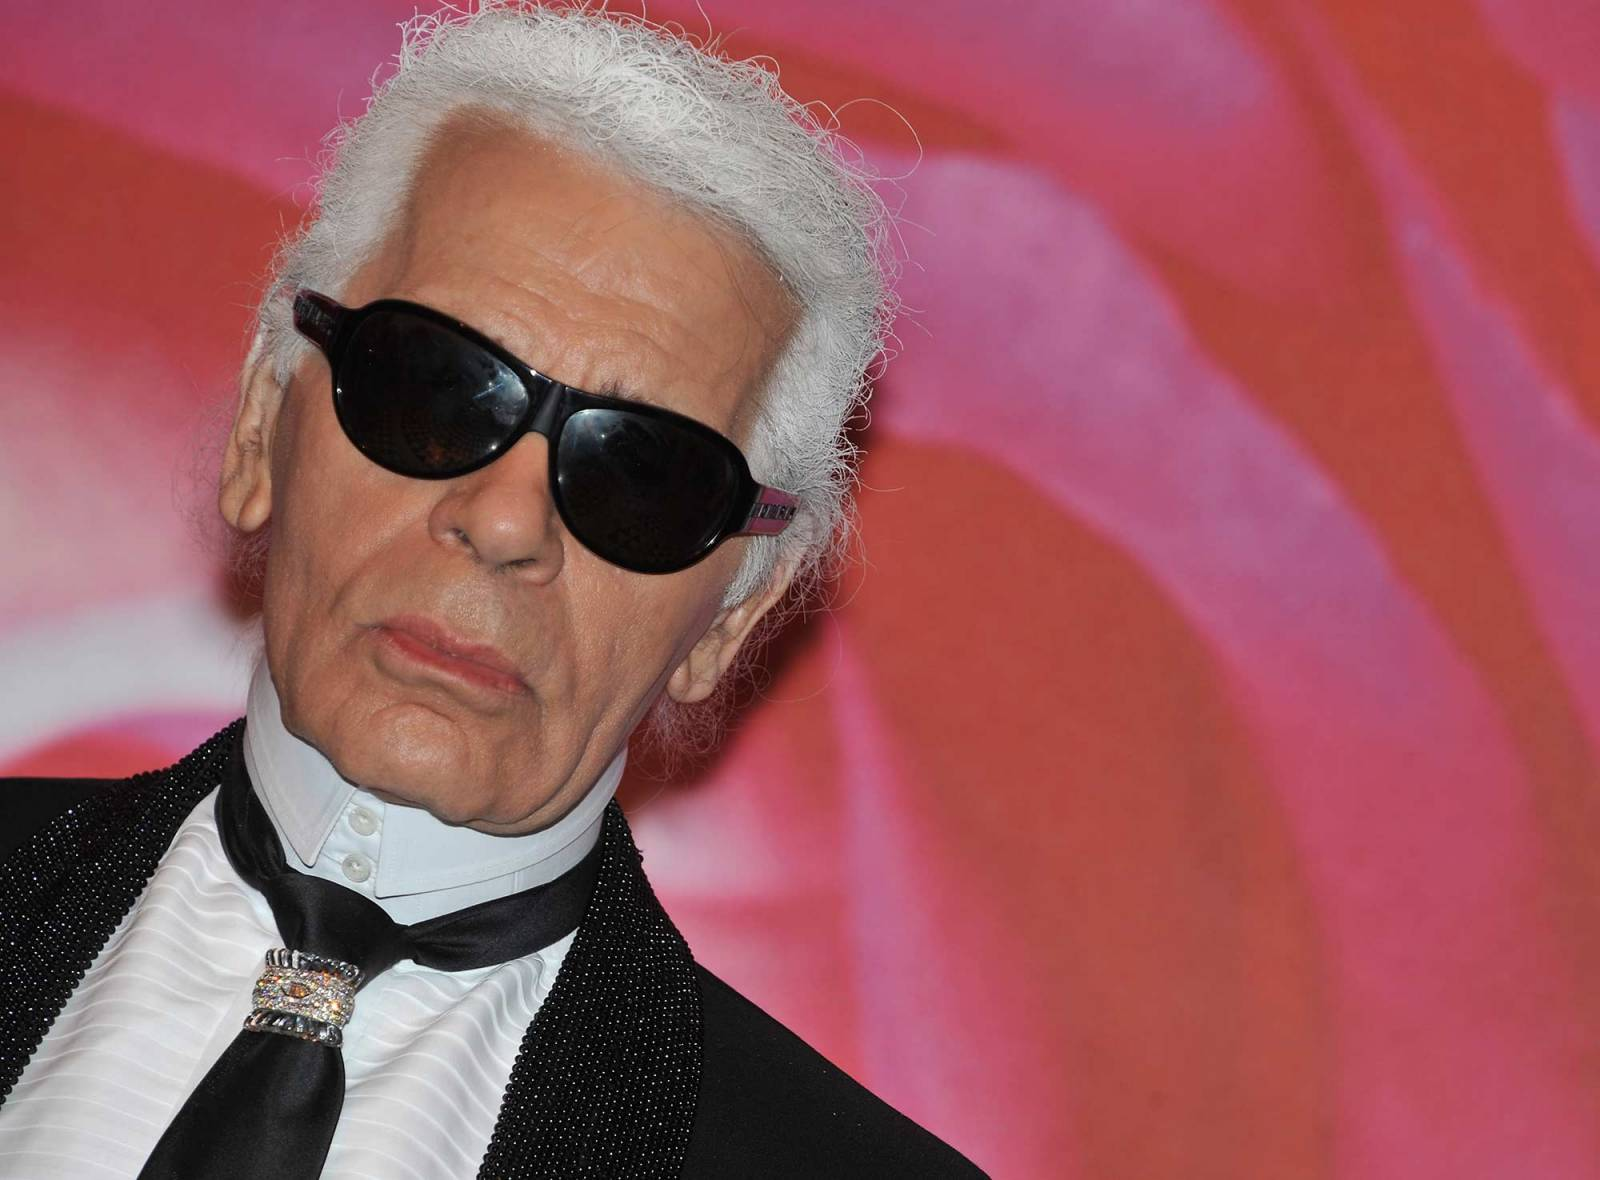 Karl Lagerfeld (Fot. Getty Images)